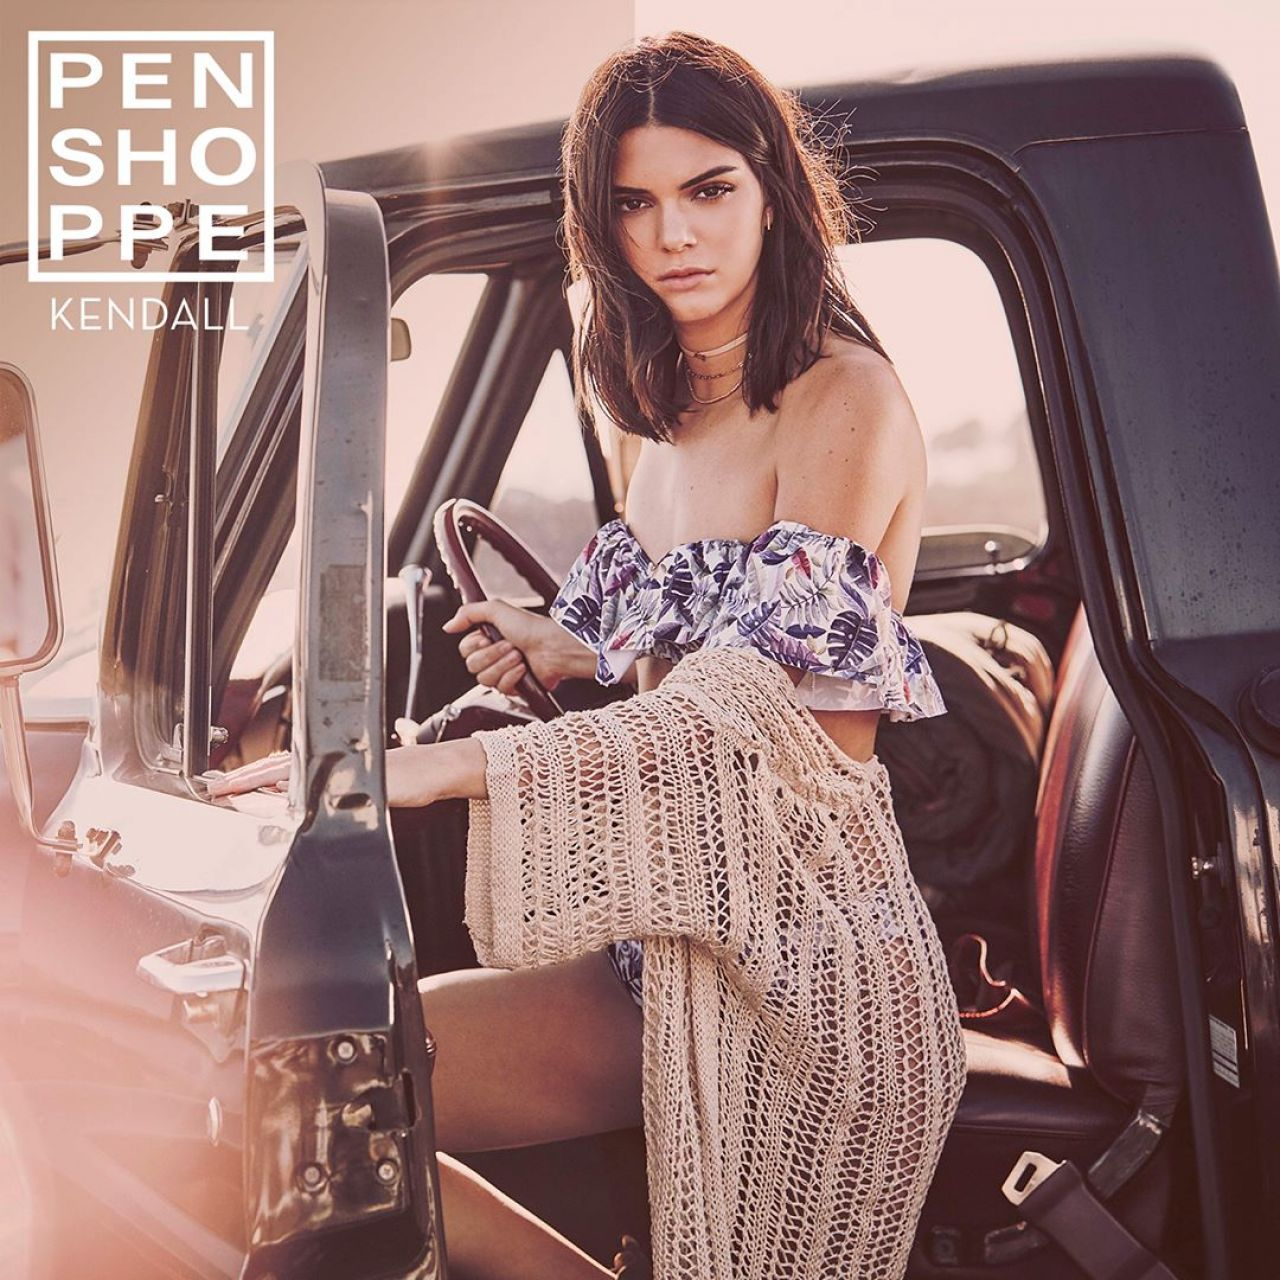 Fall Leave Wallpaper Kendall Jenner Penshoppe Spring Summer 2017 Collection